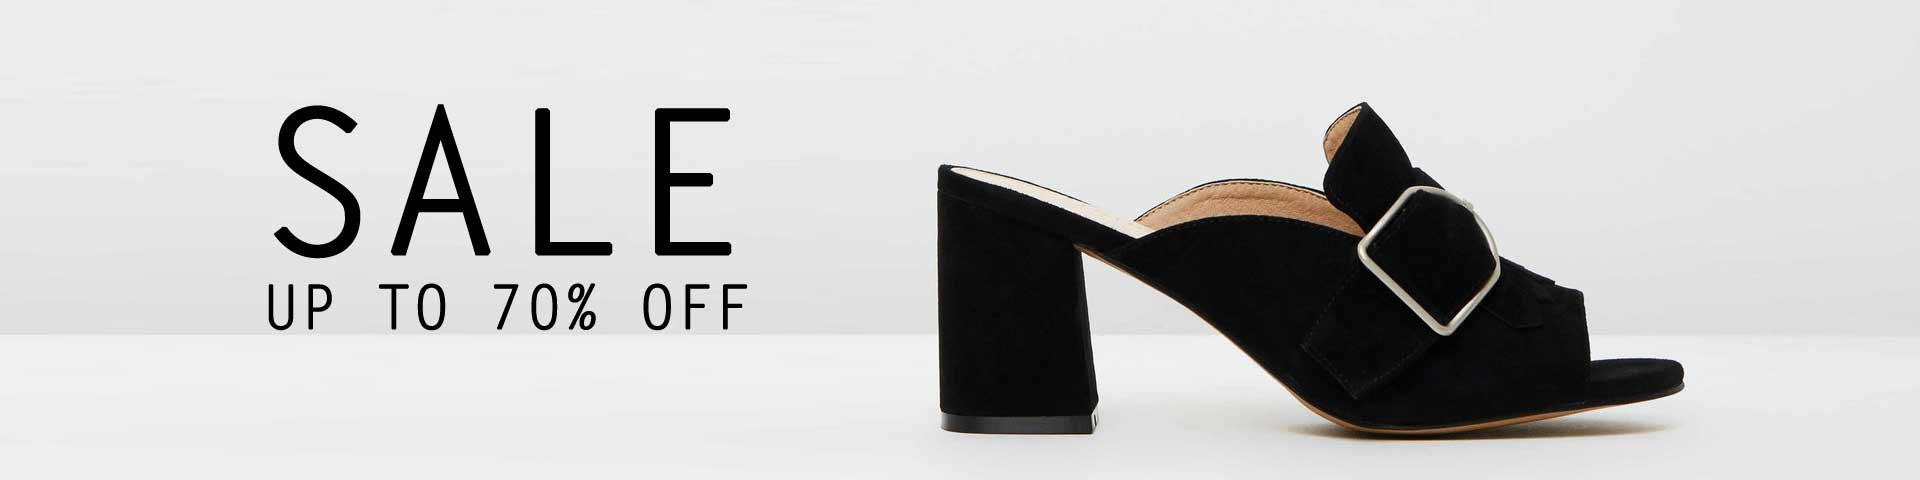 Womens Shoe Sale